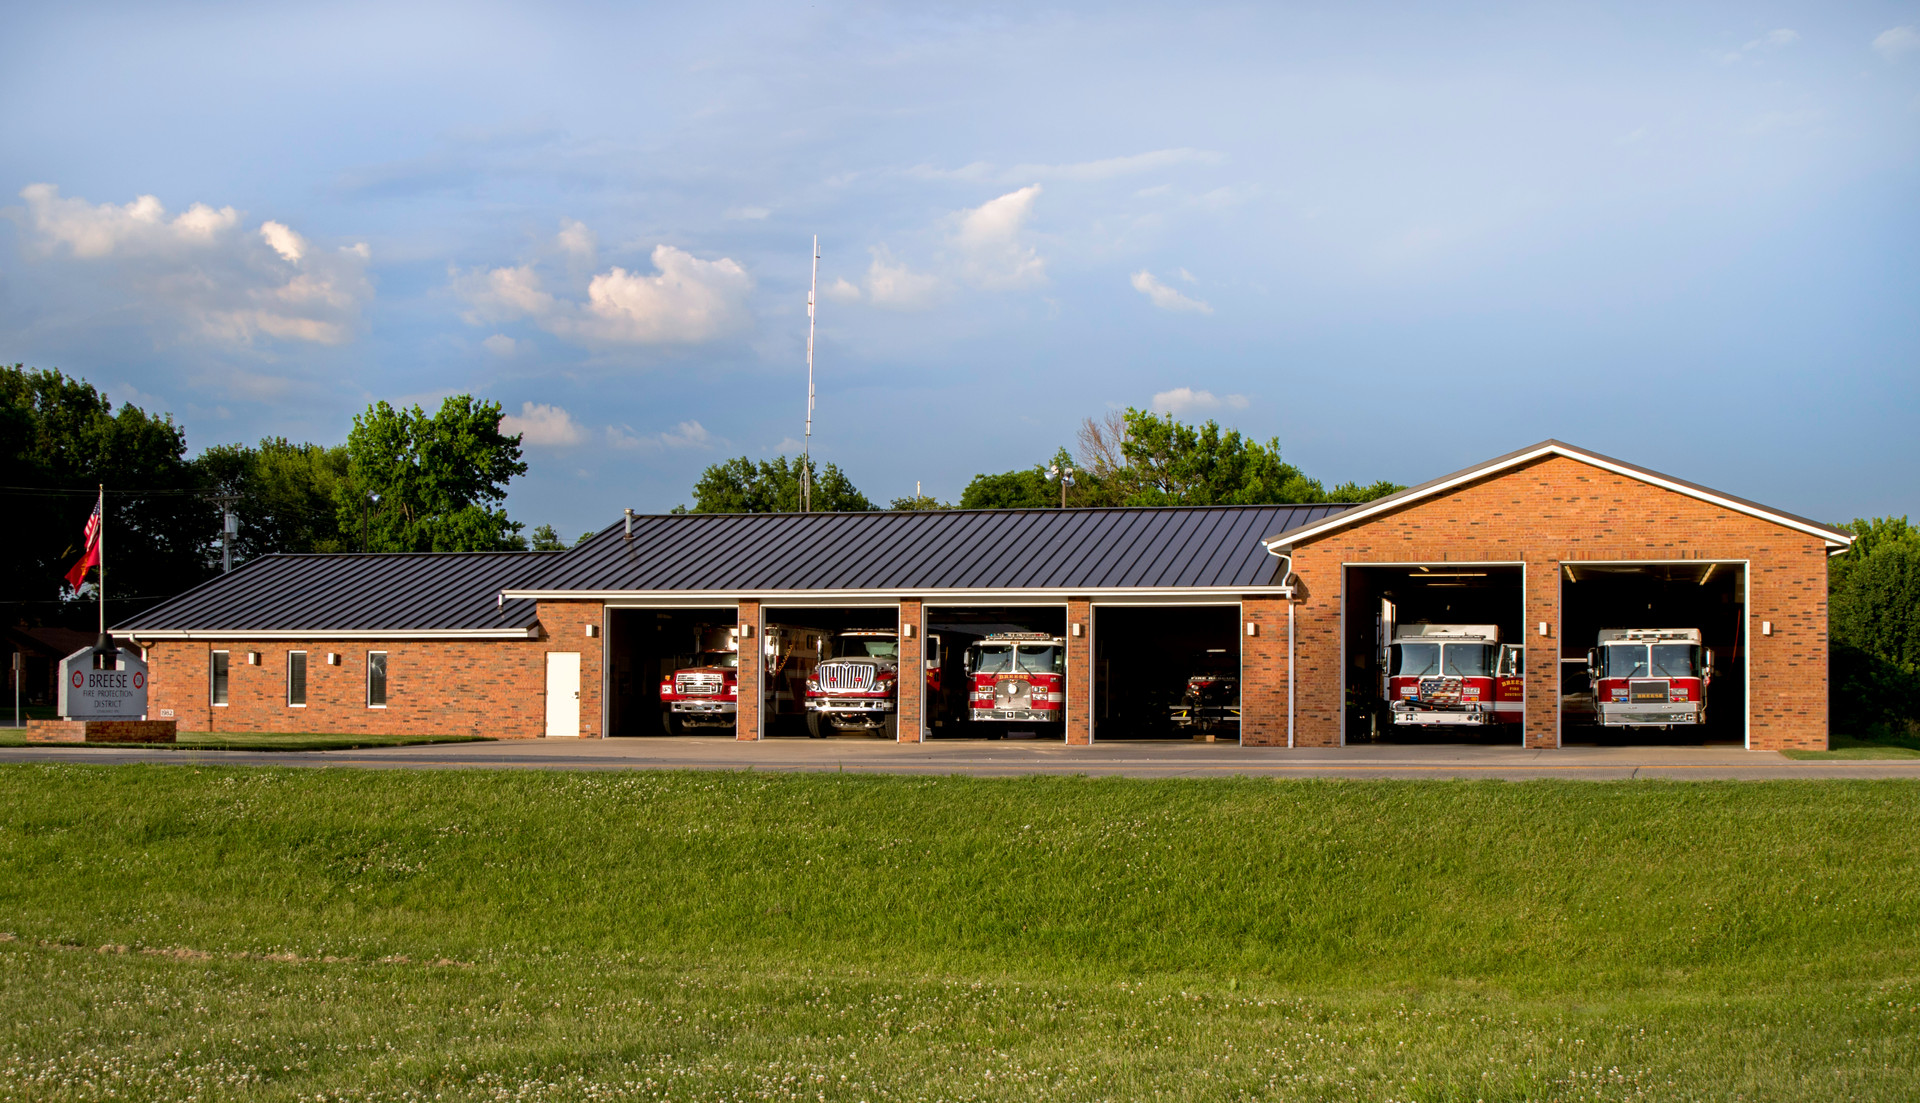 Breese Fire Station